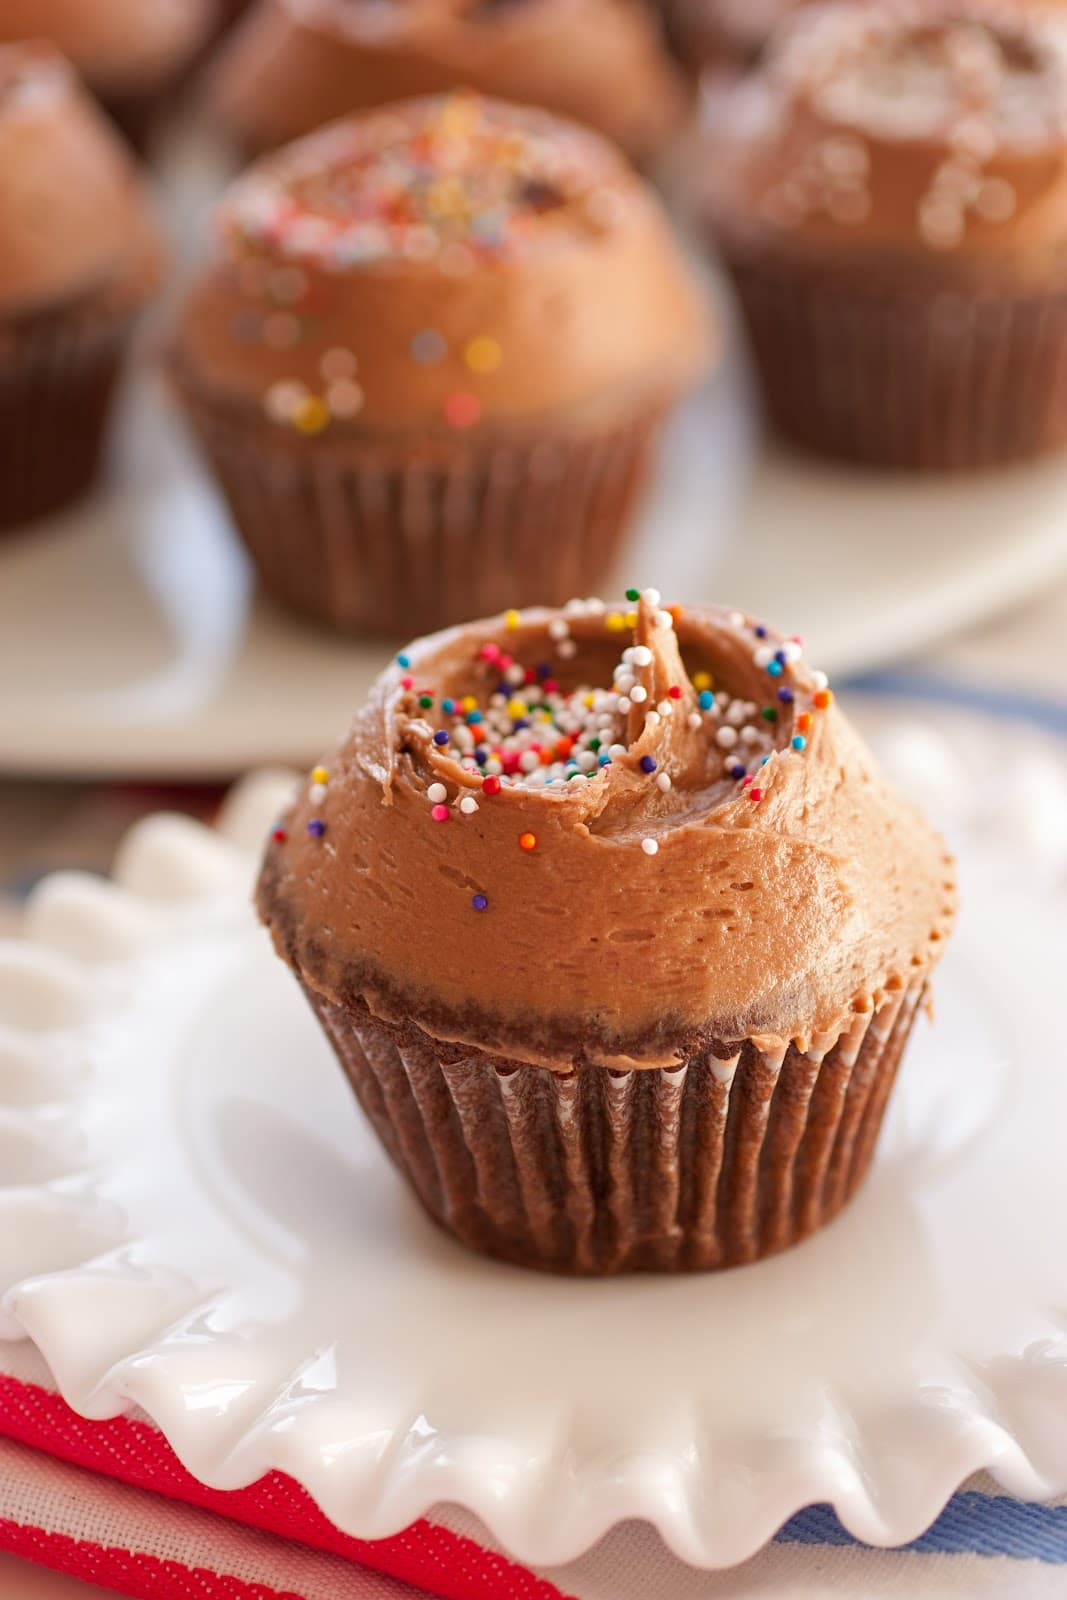 Cupcake Chocolate Frosting